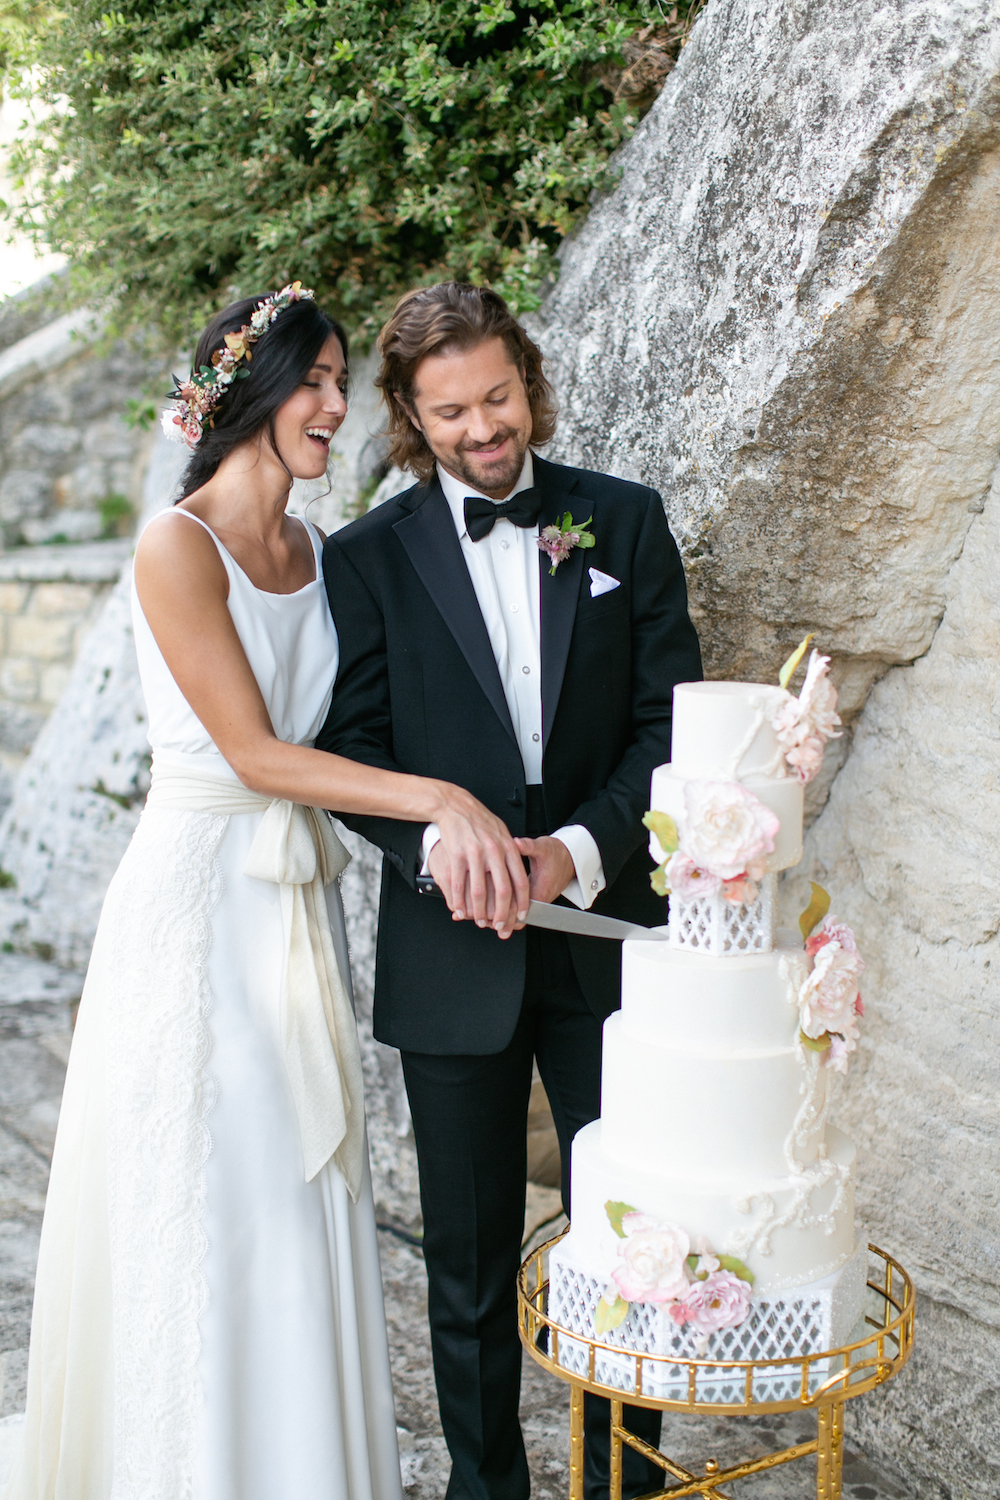 couple cutting wedding cake in Tuscany